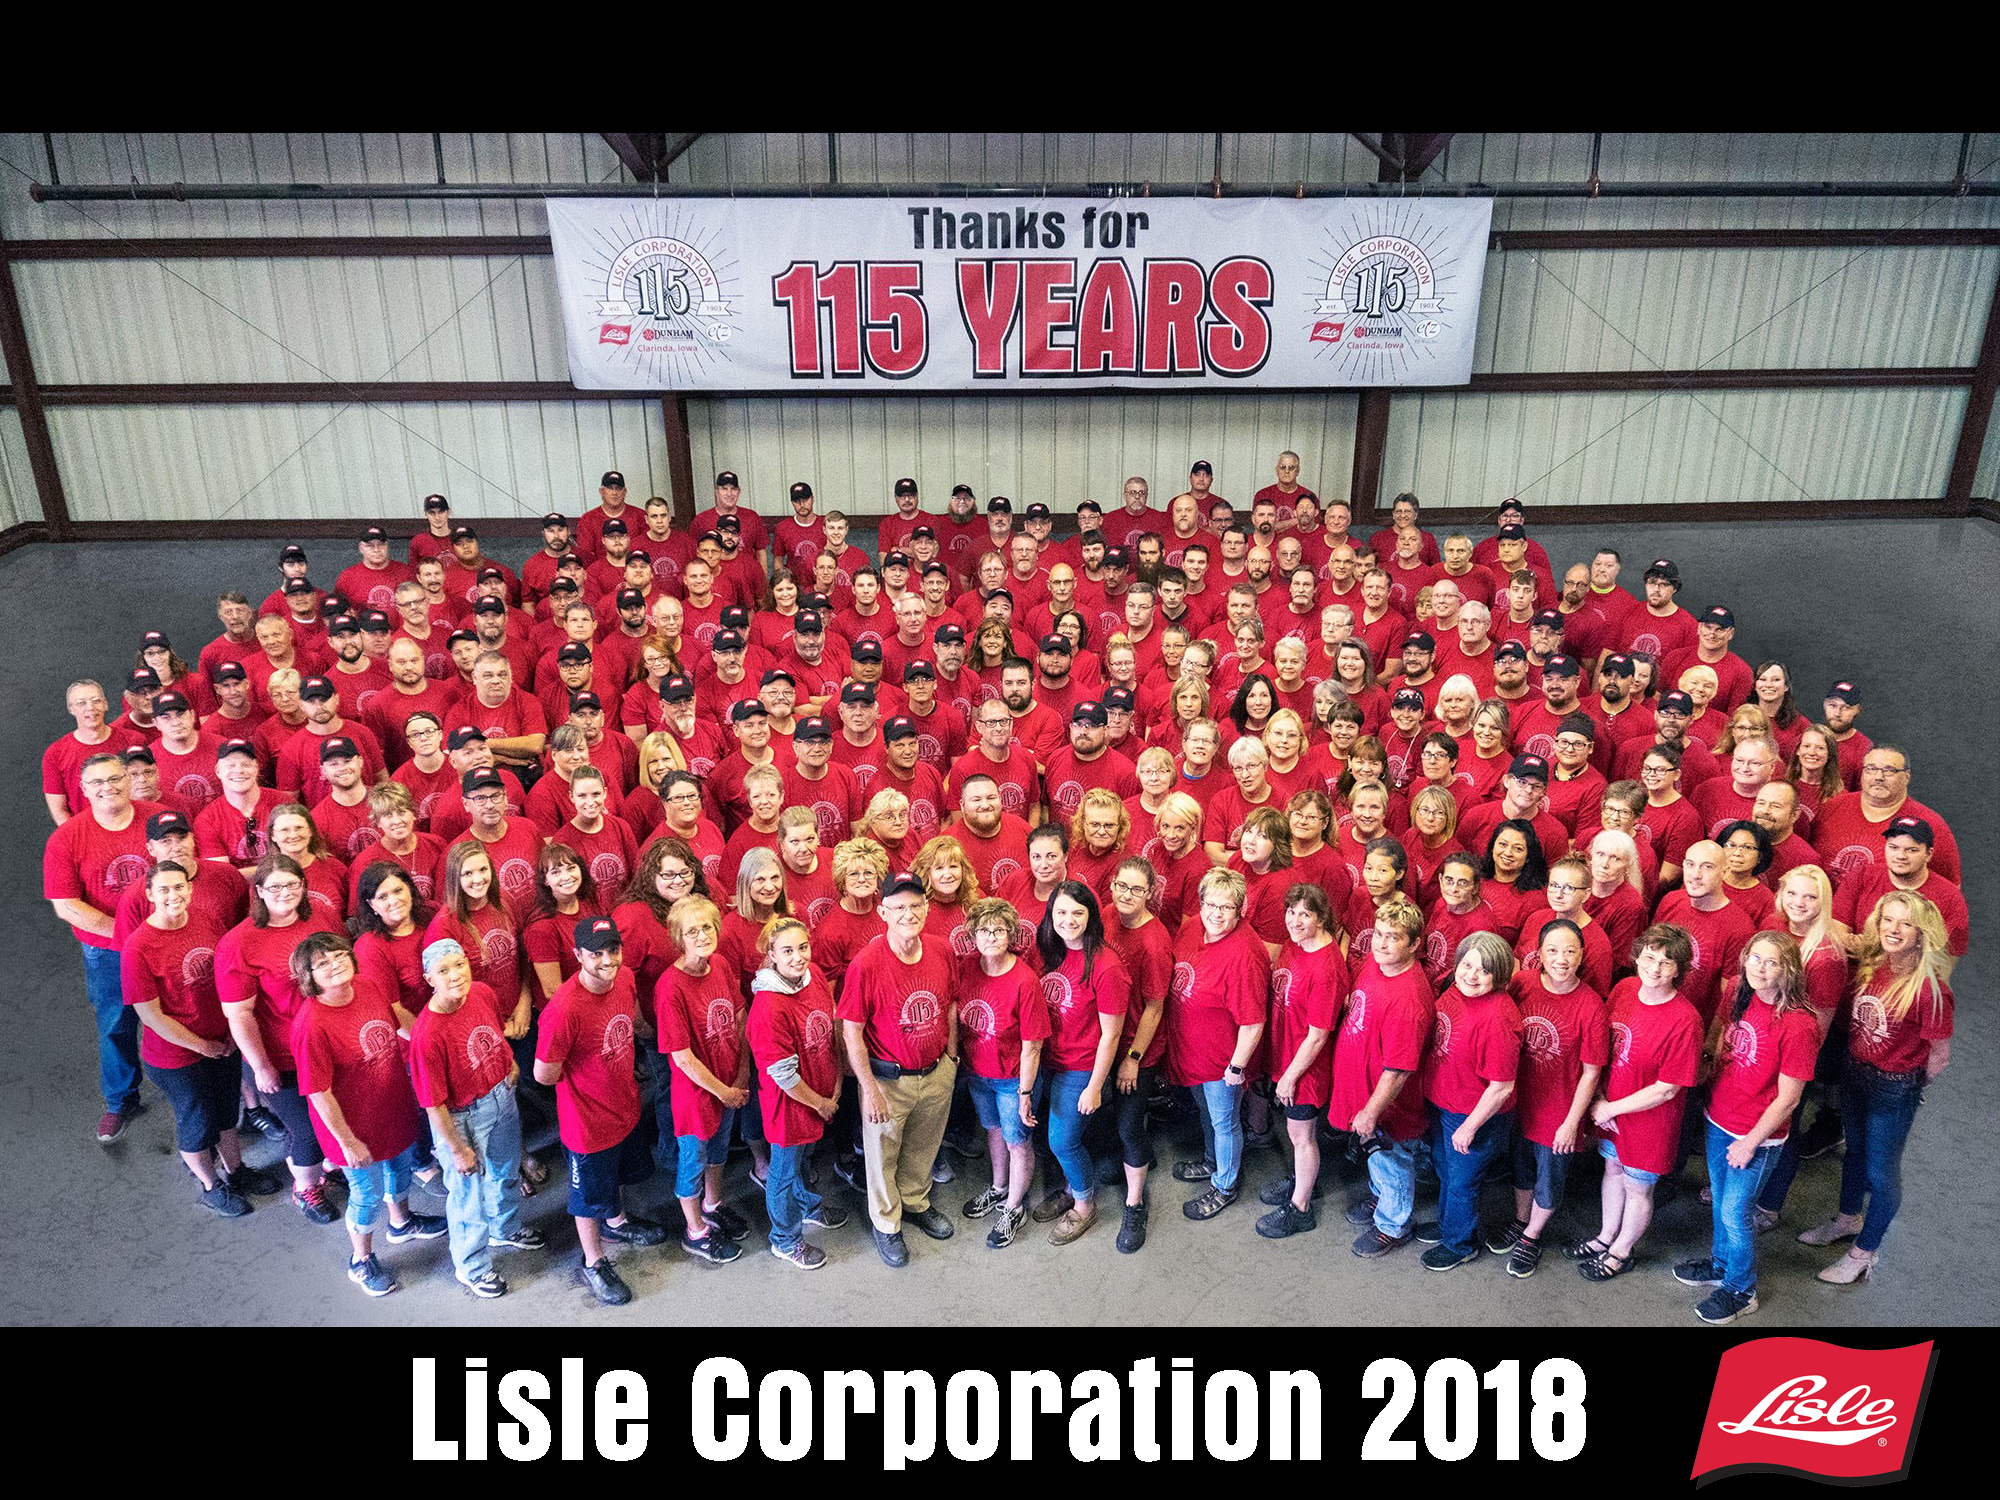 Photo of Lisle employees in 2013